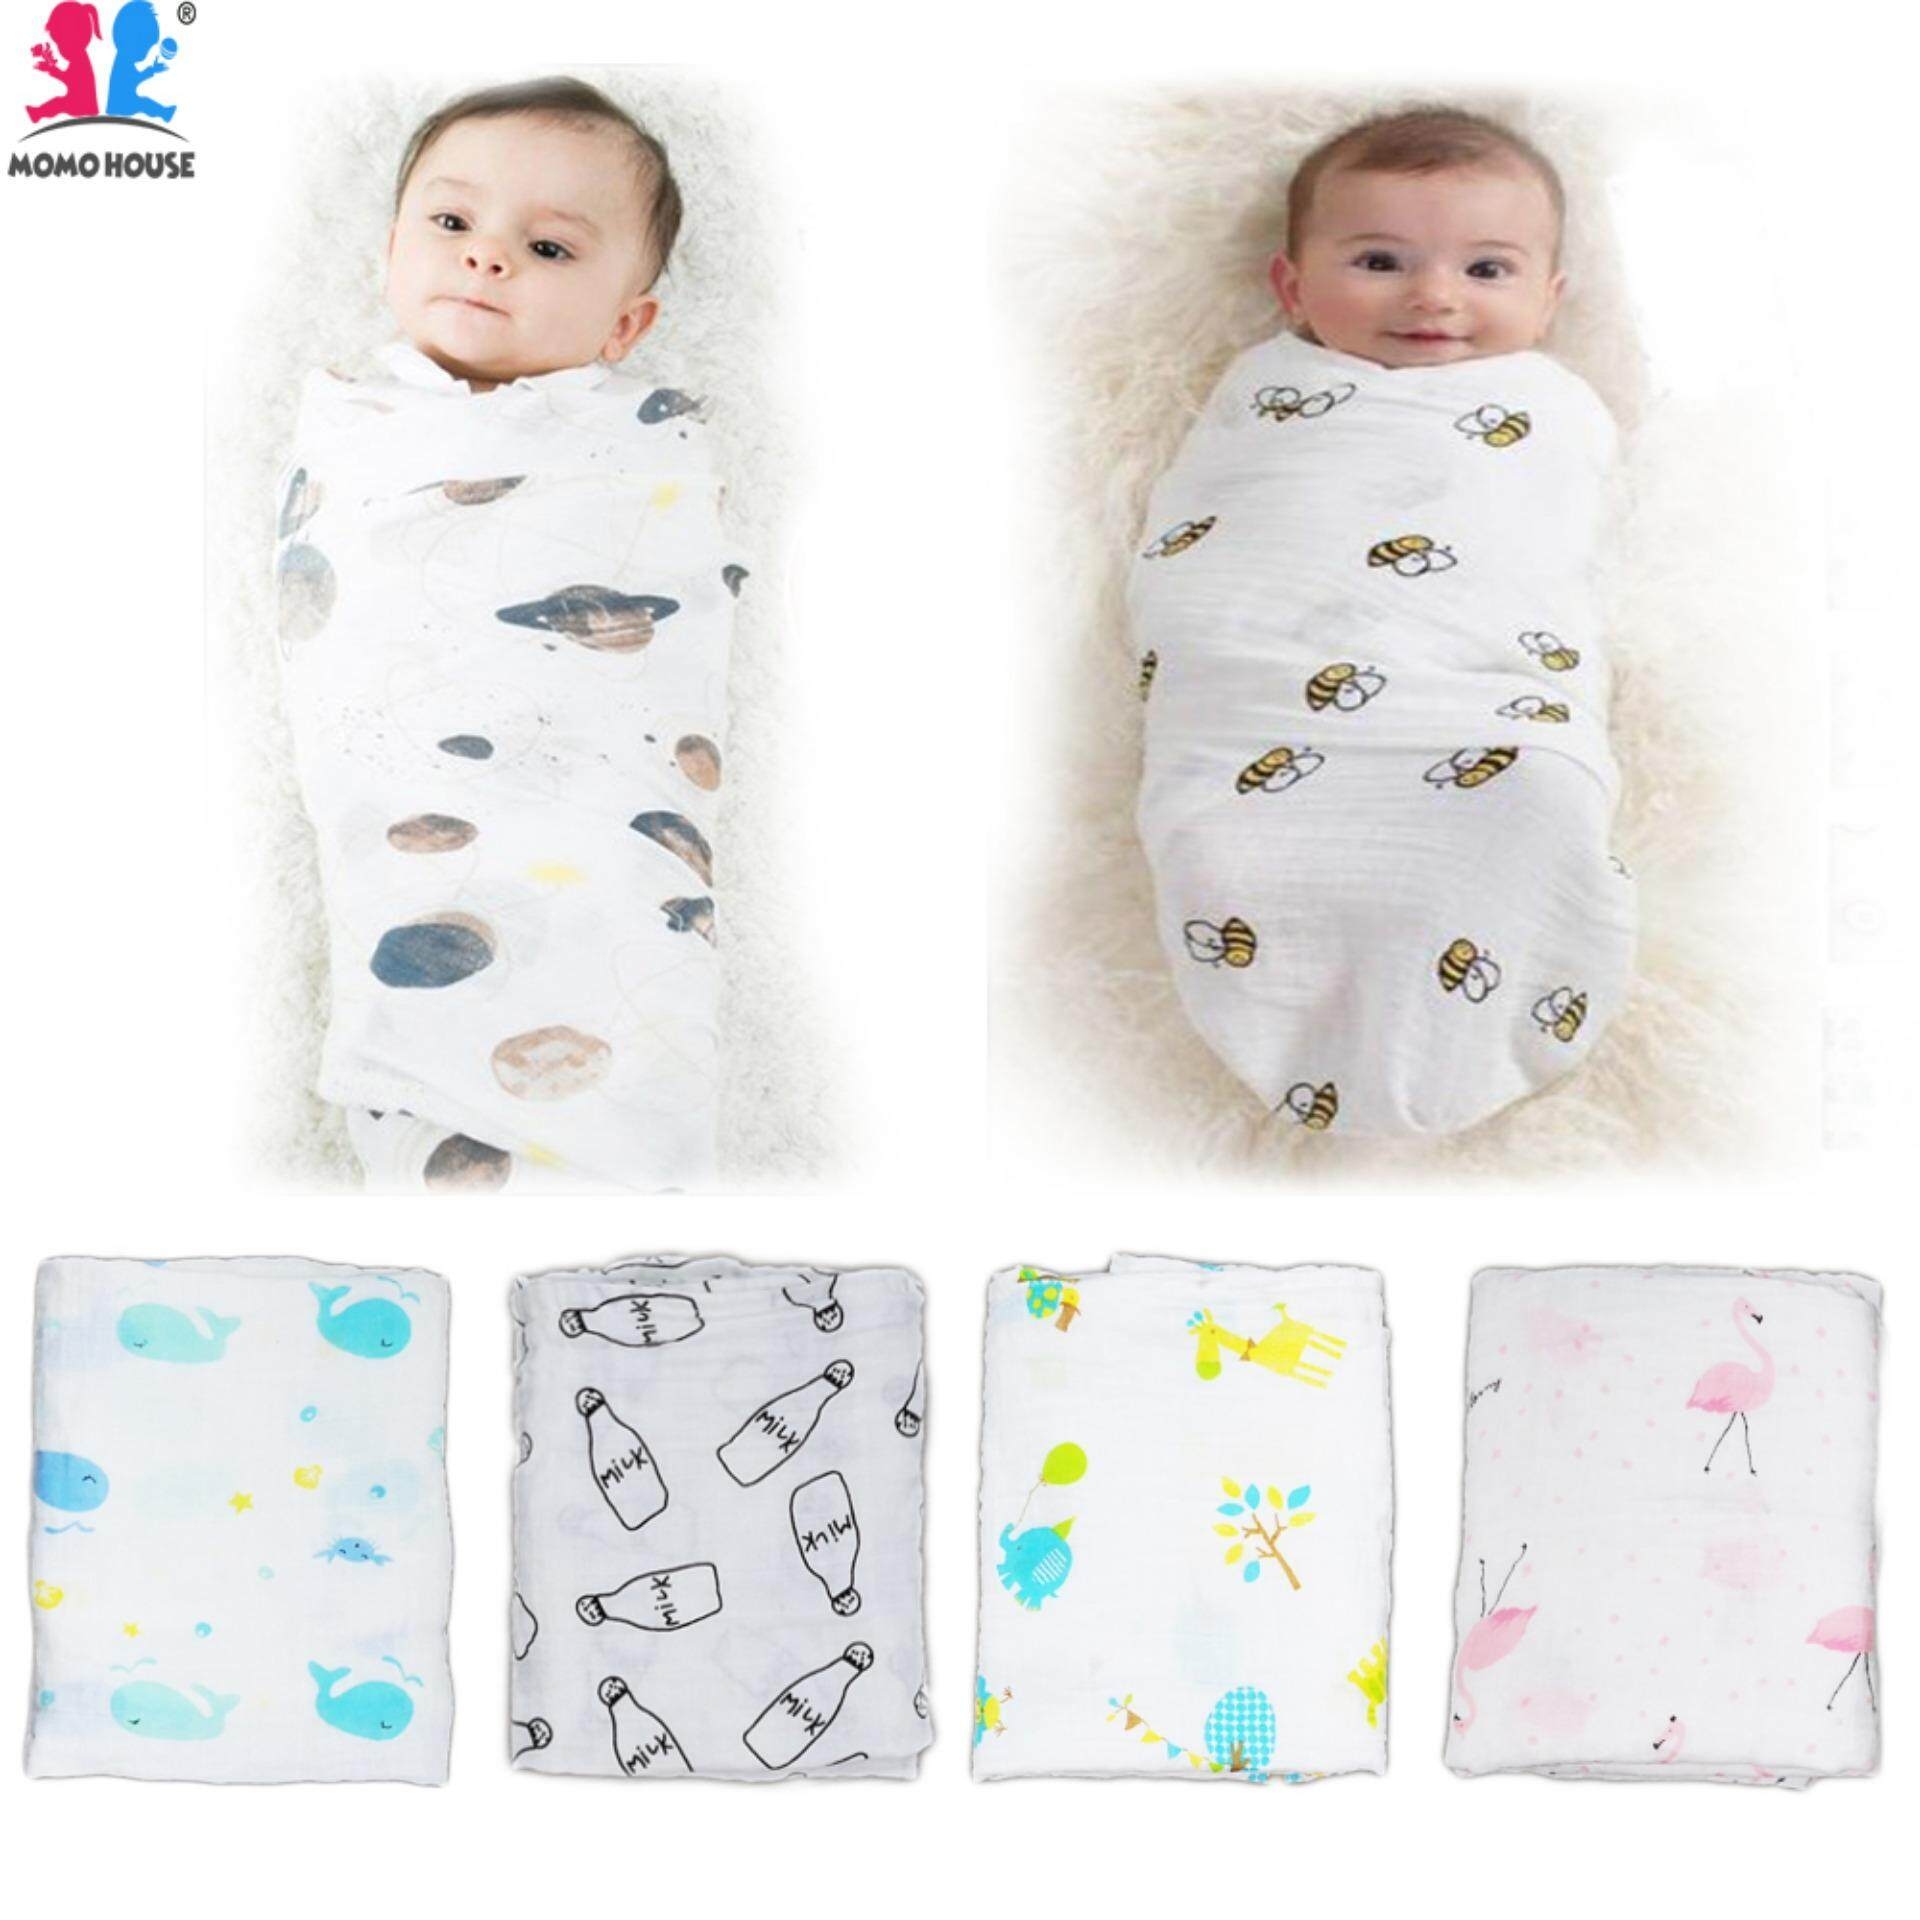 Boys' Baby Clothing Supply 3-6m Newborn Infant Baby Boy Girl Cartoon Monkey Print Cotton Swaddle Sleeping Bag Wrap Blanket Baby Clothes Accessories Mother & Kids